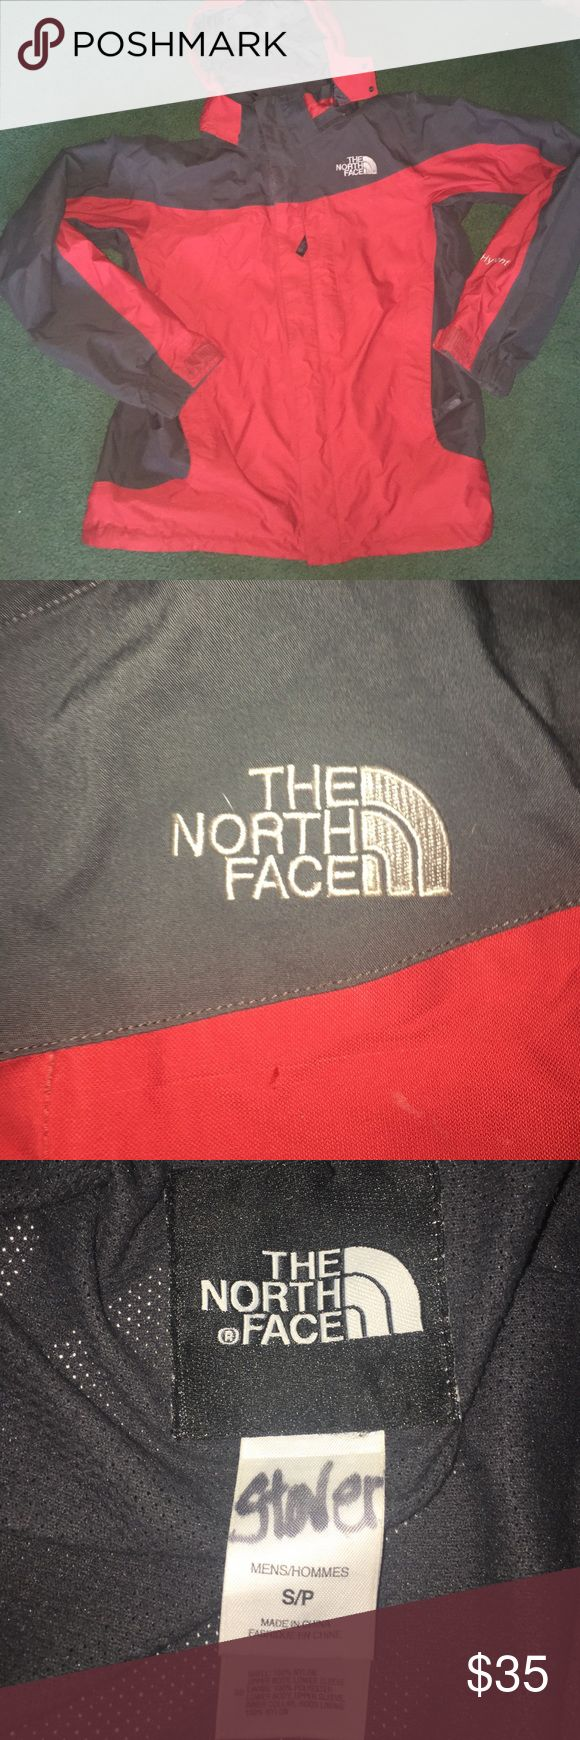 A men's small North Face Hyvent winter coat shell. It's red and grey. Has both a zipper and velcro. The North Face Jackets & Coats Performance Jackets